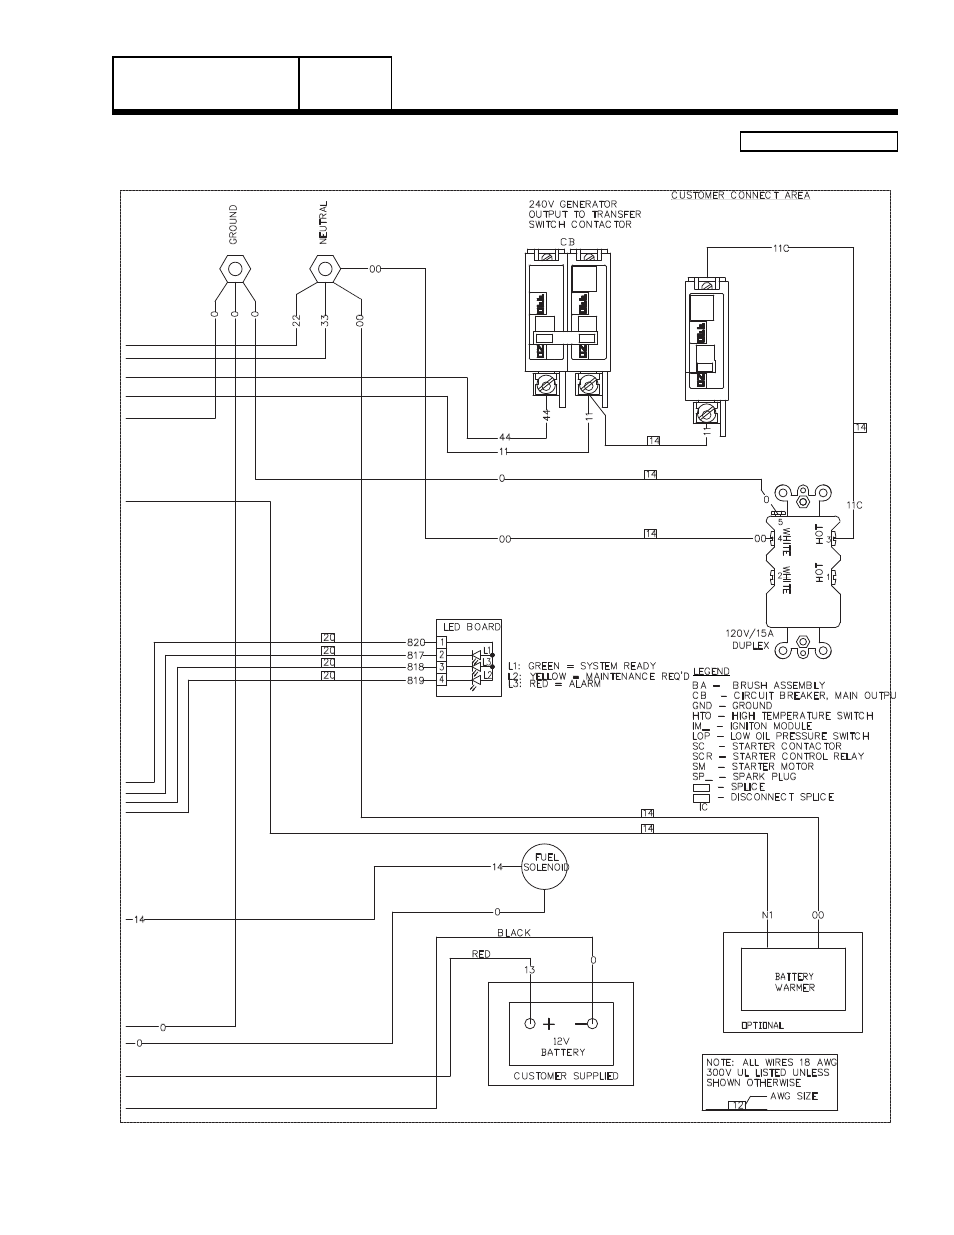 Ford Wiring Diagram Are Grouped Together By